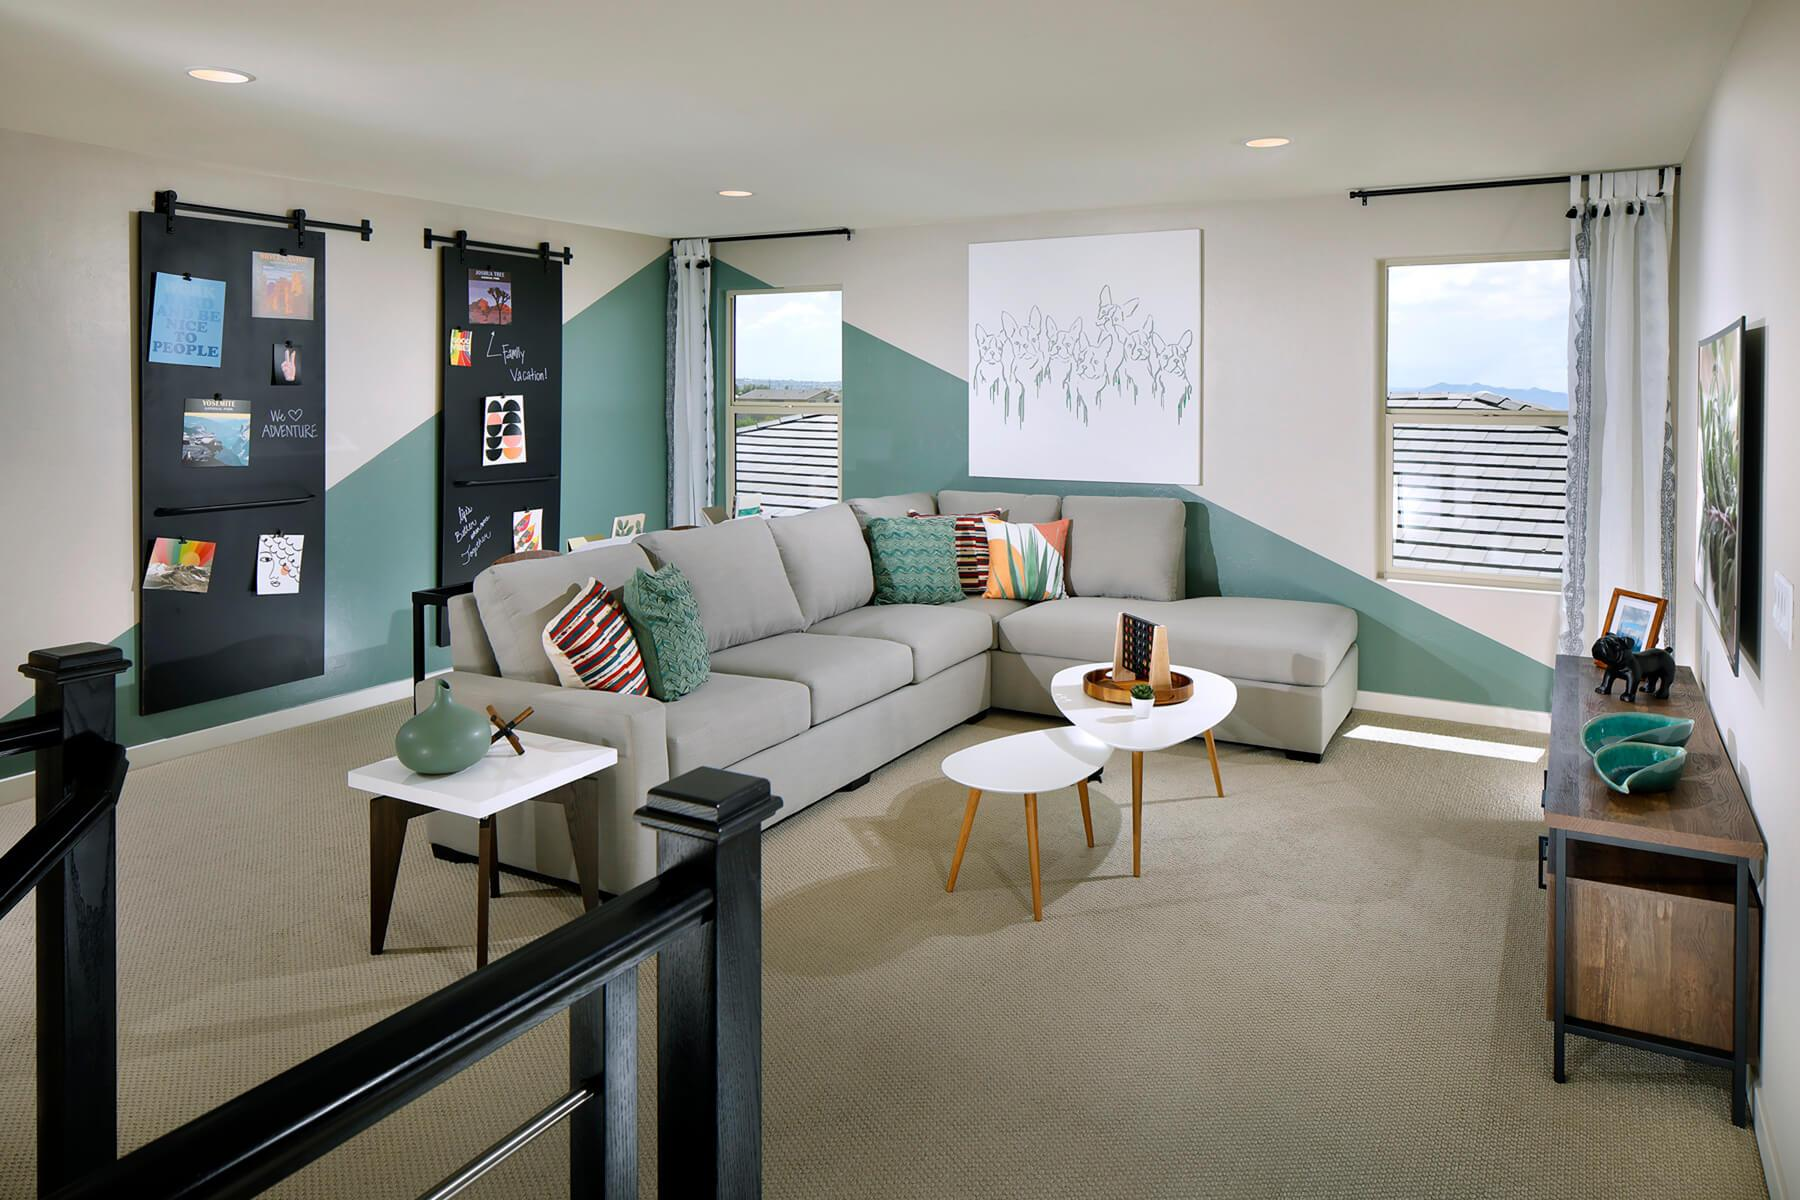 Living Area featured in the Wren By Meritage Homes in Tucson, AZ